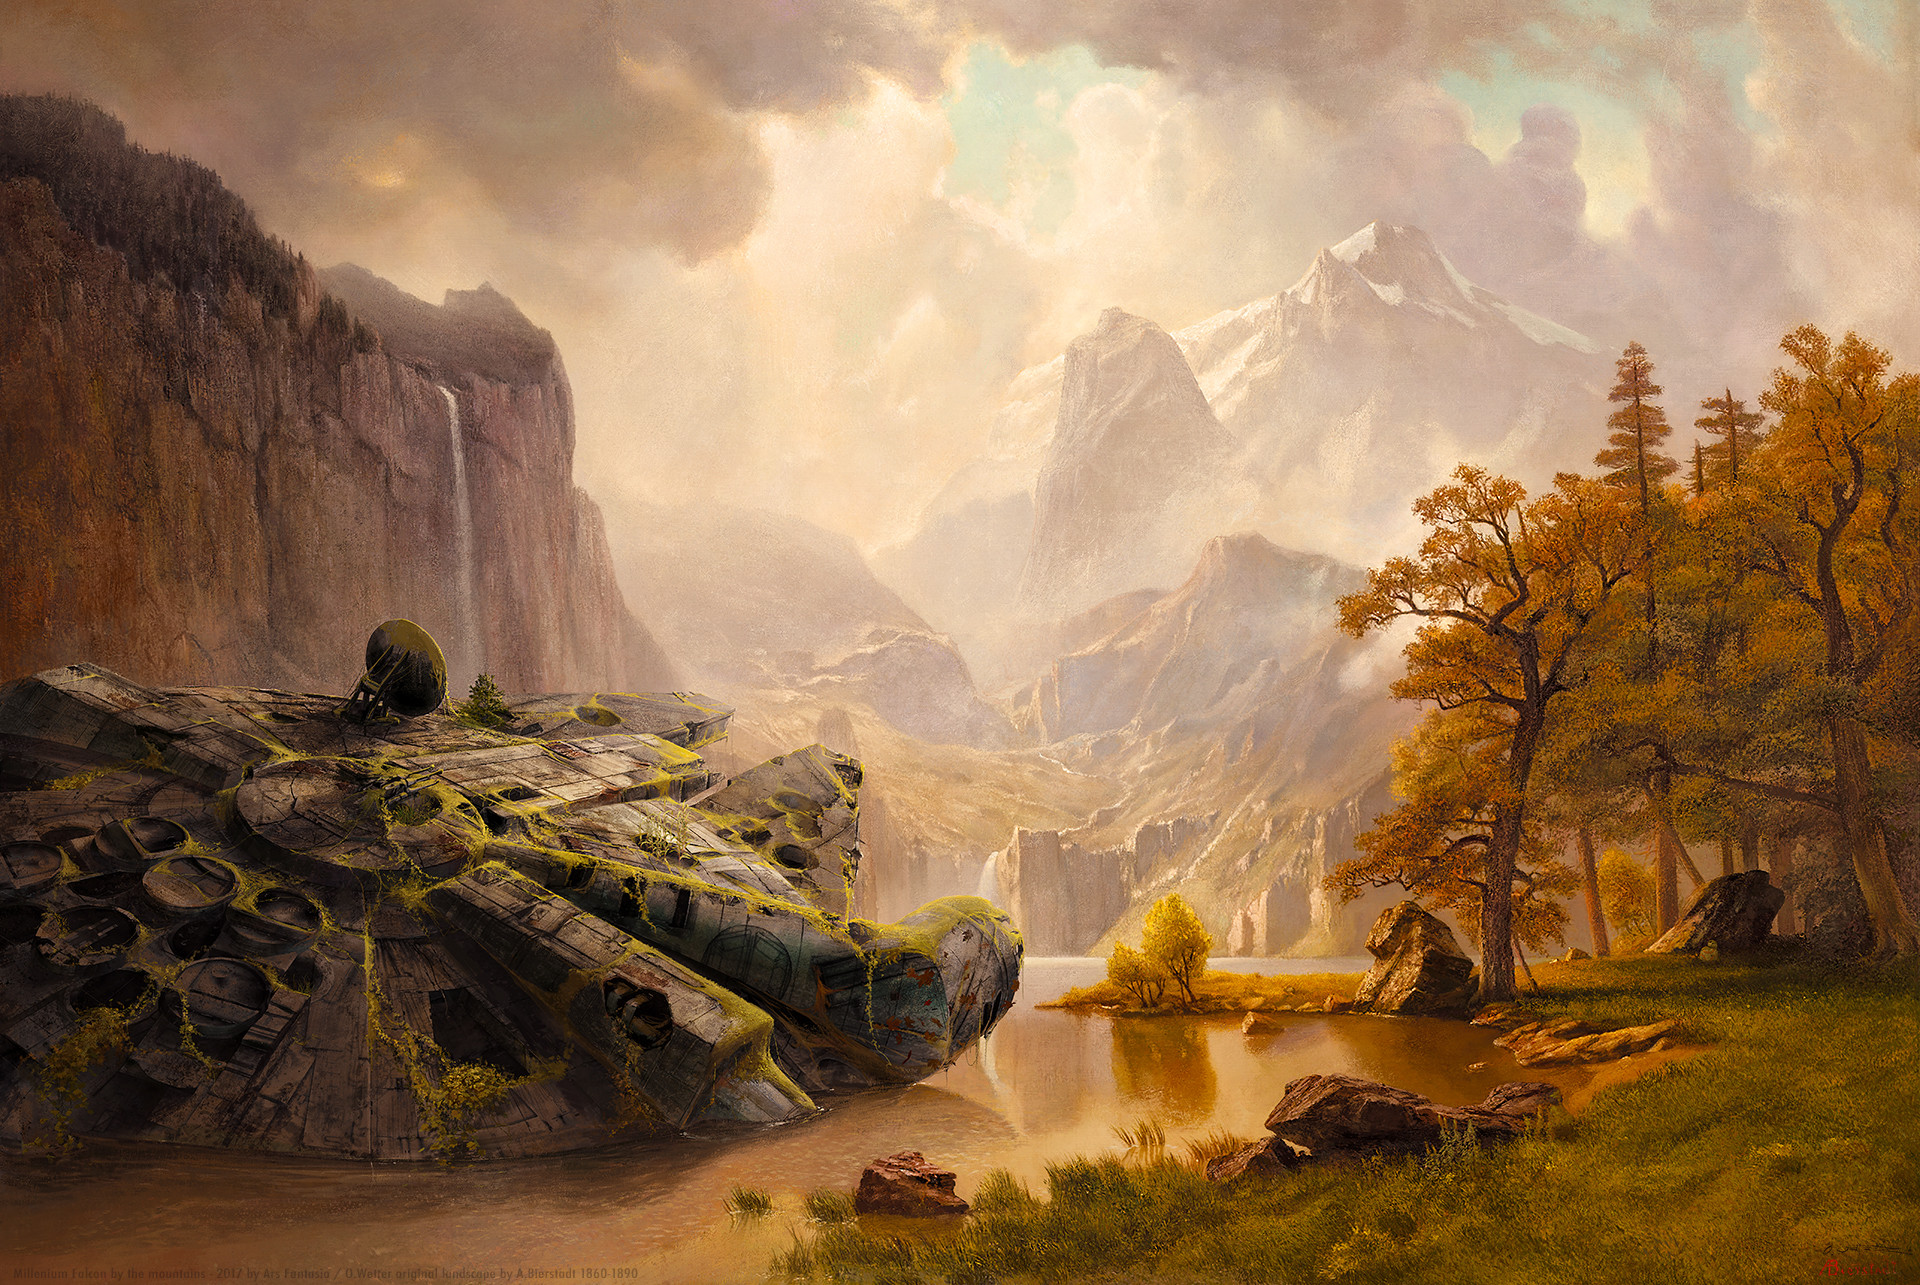 Star Wars meets Bierstadt